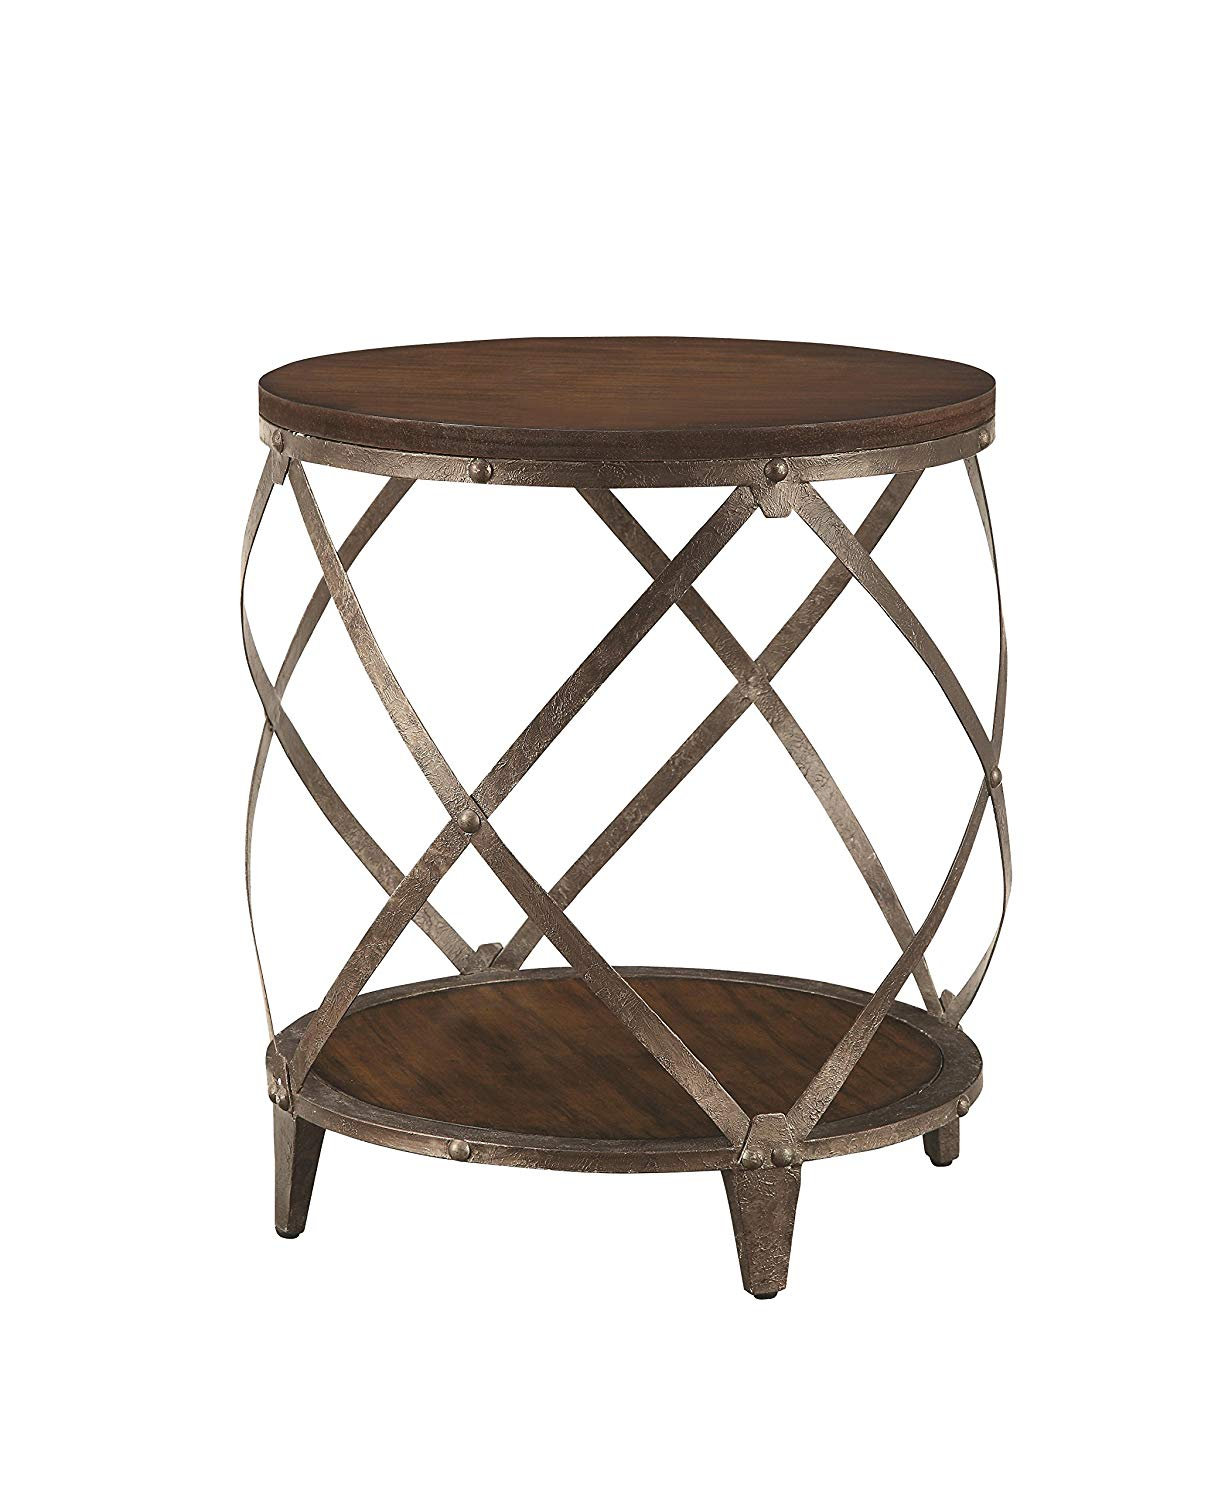 metal accent table with drum shape brown kitchen dining round wood white rectangle tablecloth thai furniture timmy night black leather entry for small spaces outdoor credenza